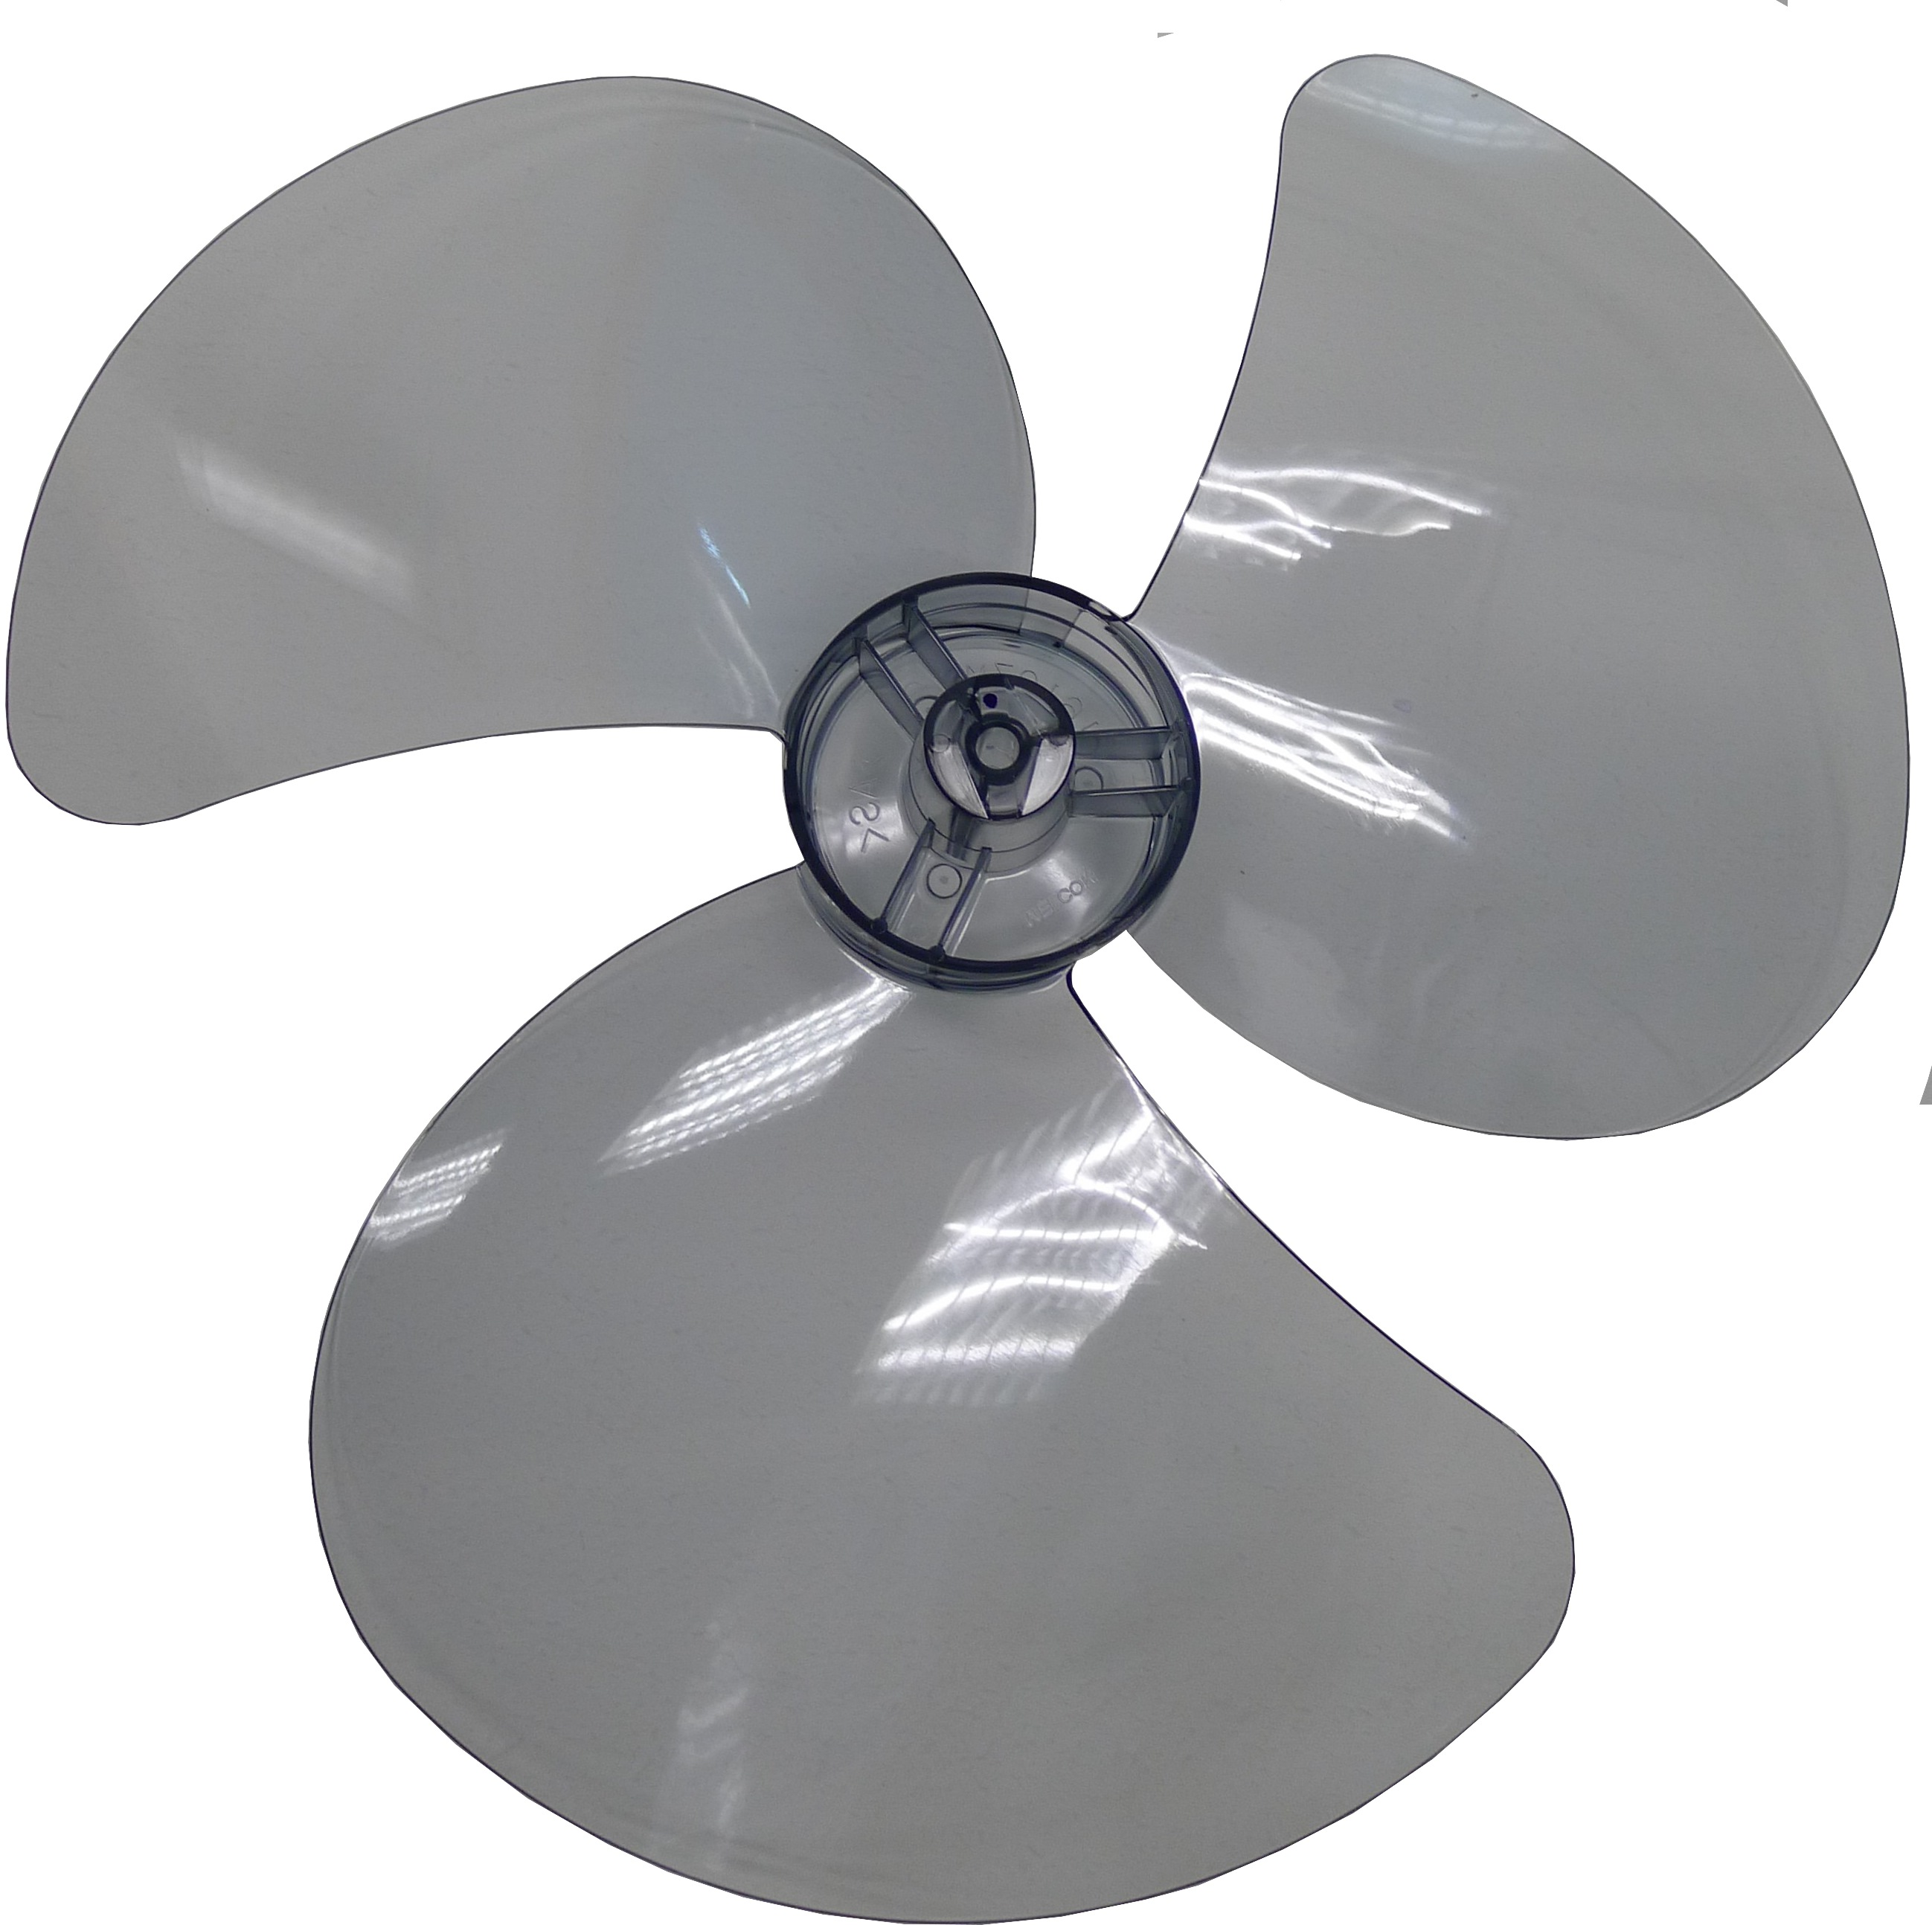 Plastic Water Proof Wall Fans Collage Porn Video